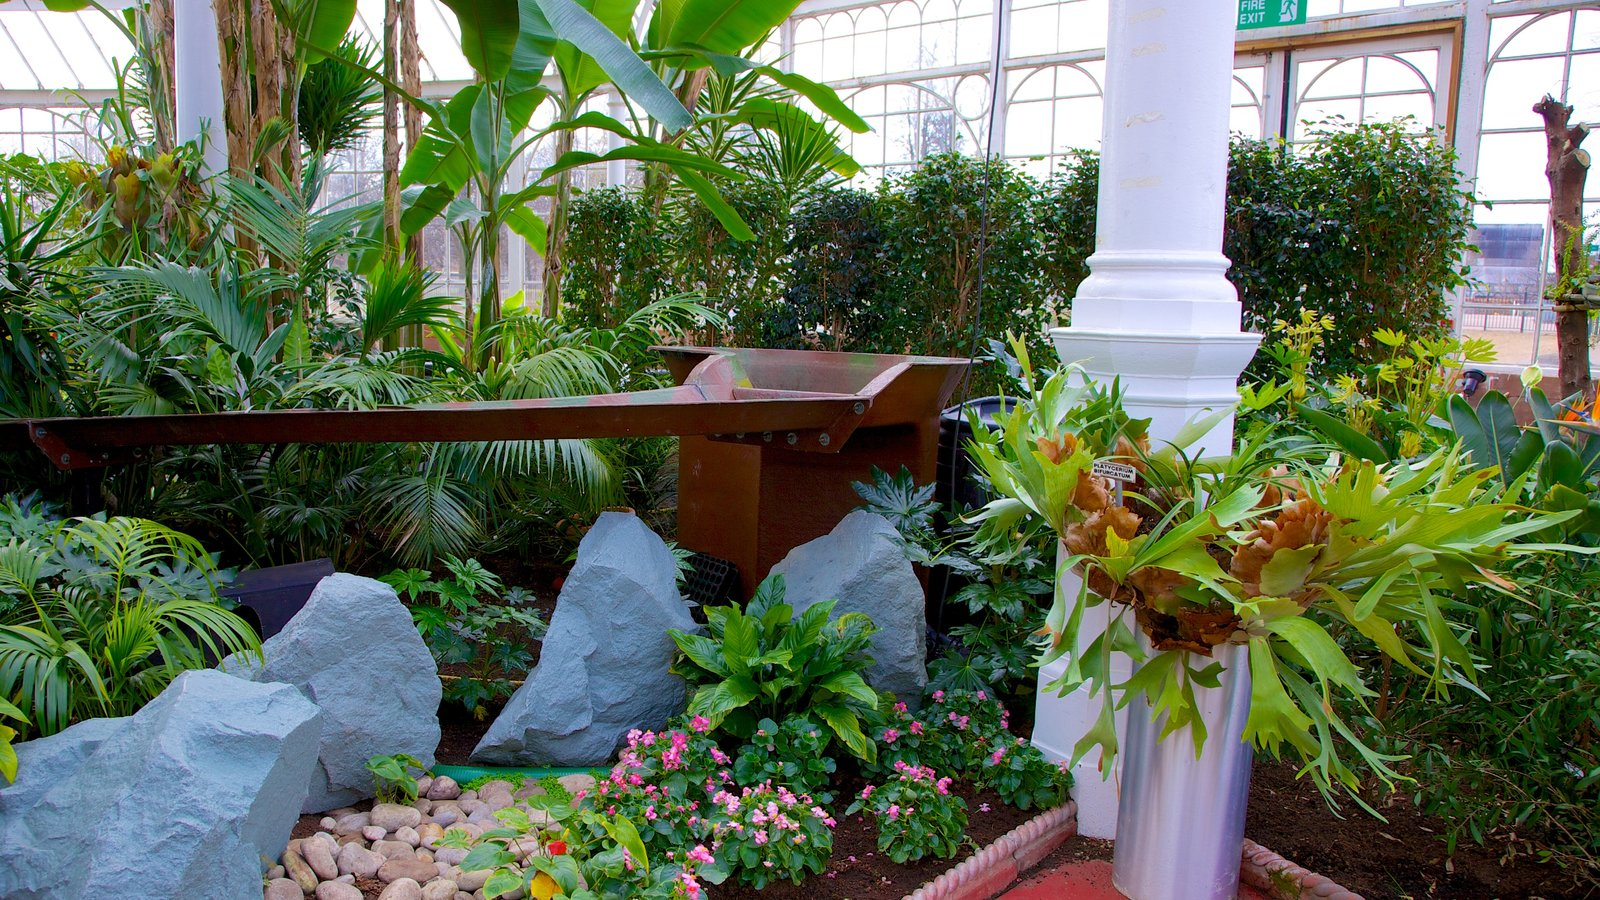 people u0027s palace and winter gardens pictures view photos u0026 images